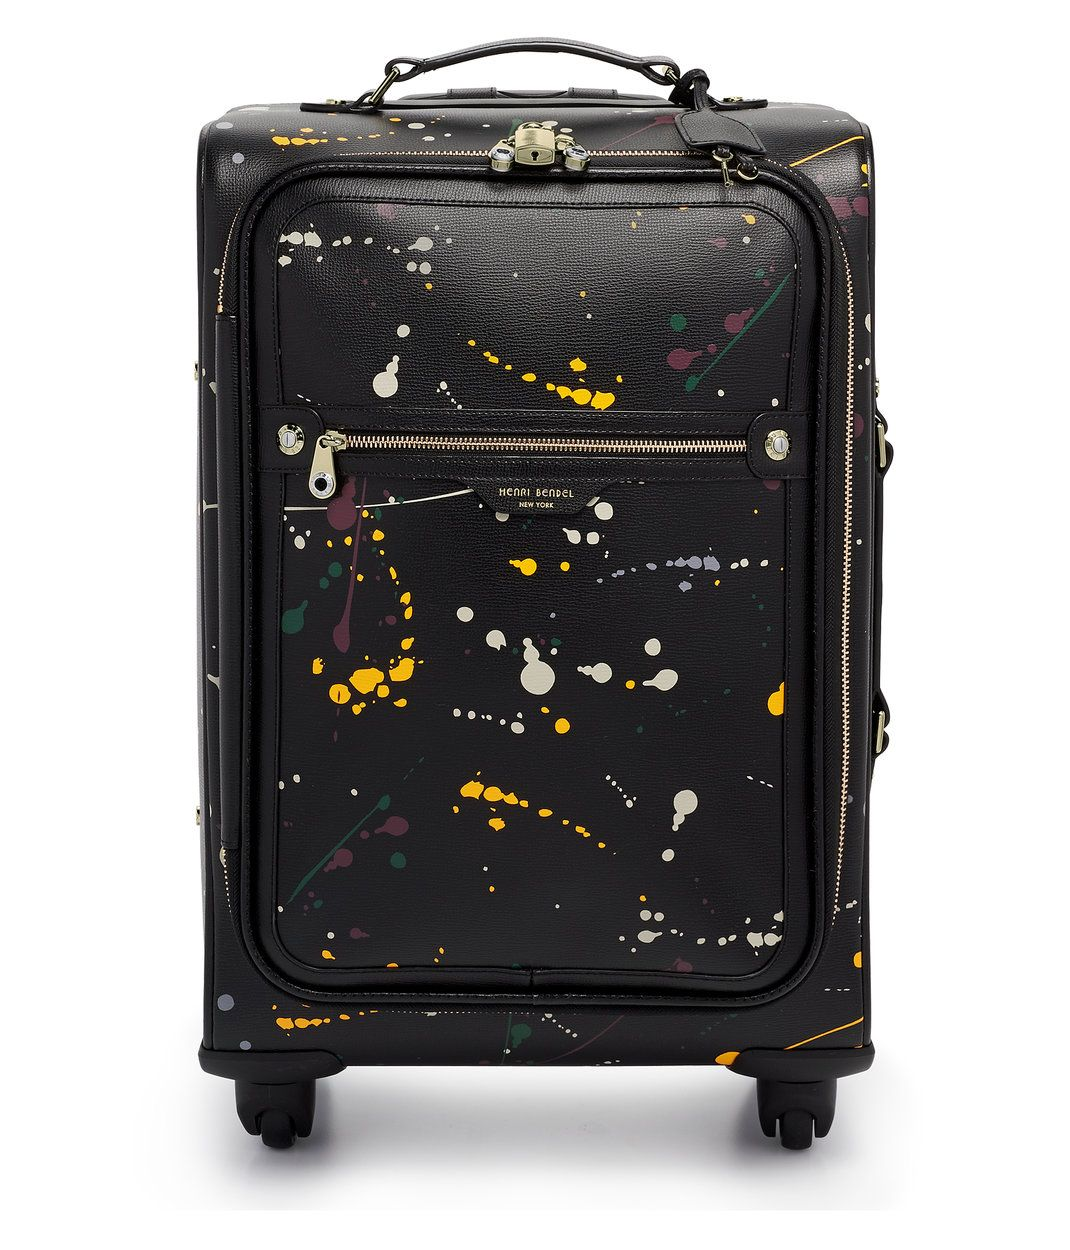 bb6a4d736688 The West 57th Paint Splatter Wheelie Suitcase is every traveling ...